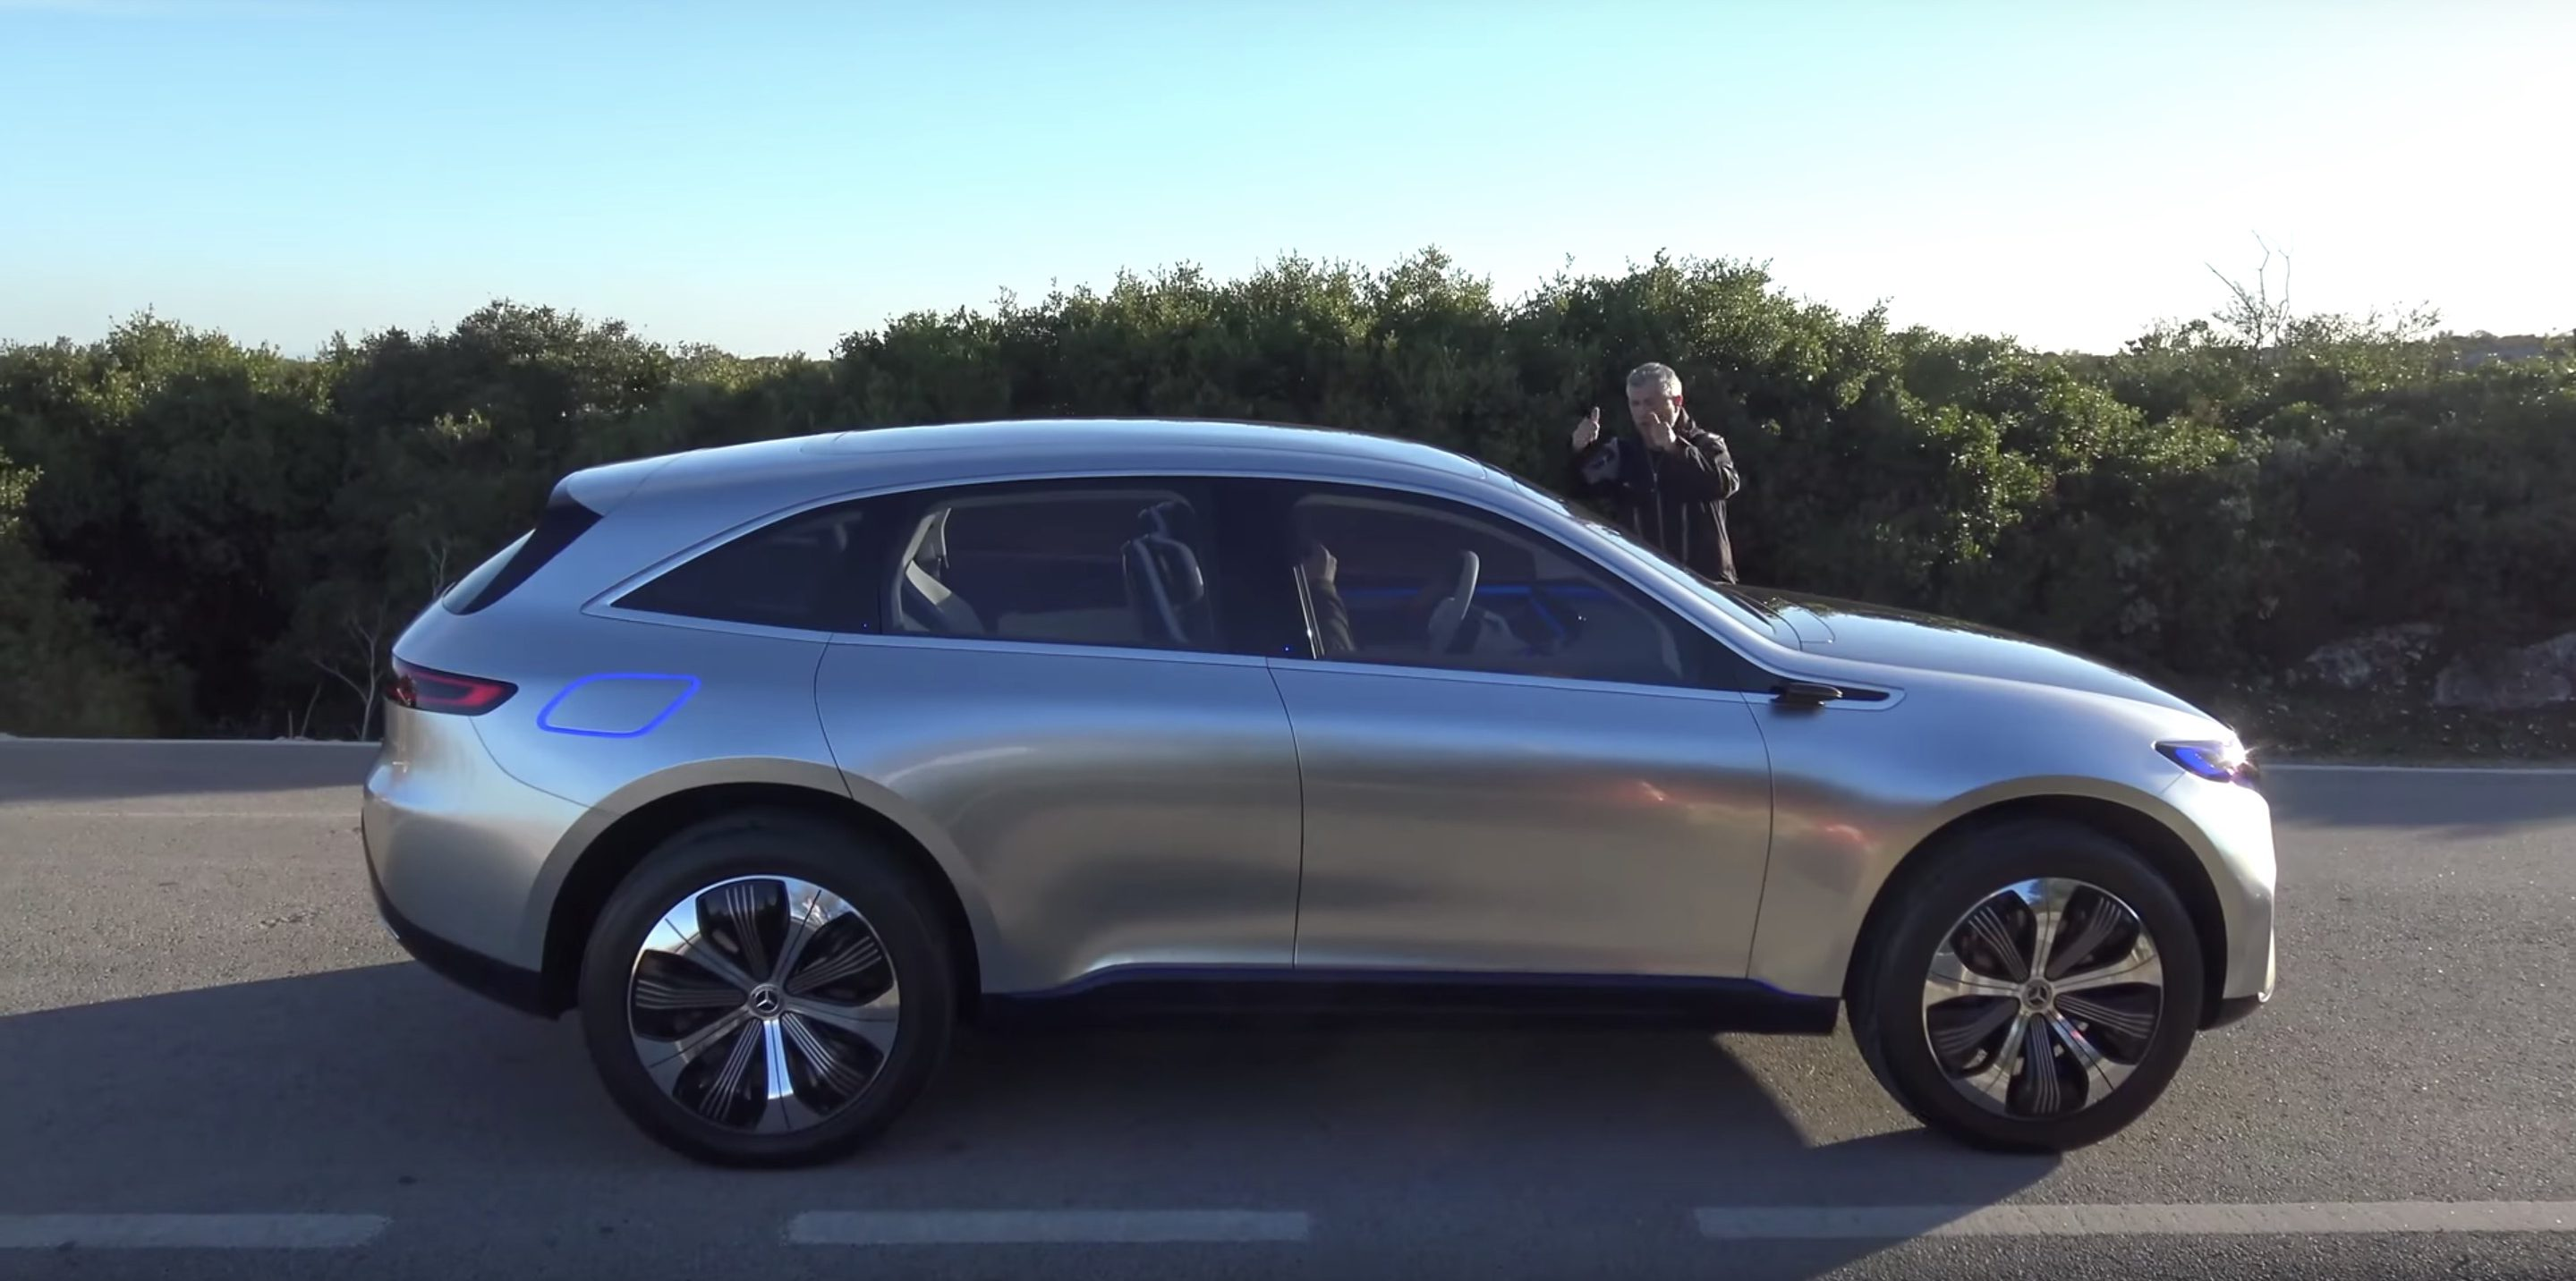 First Electric Motor Car For Rare Look At Mercedesbenzs First Nextgen Electric Car Concept Eq